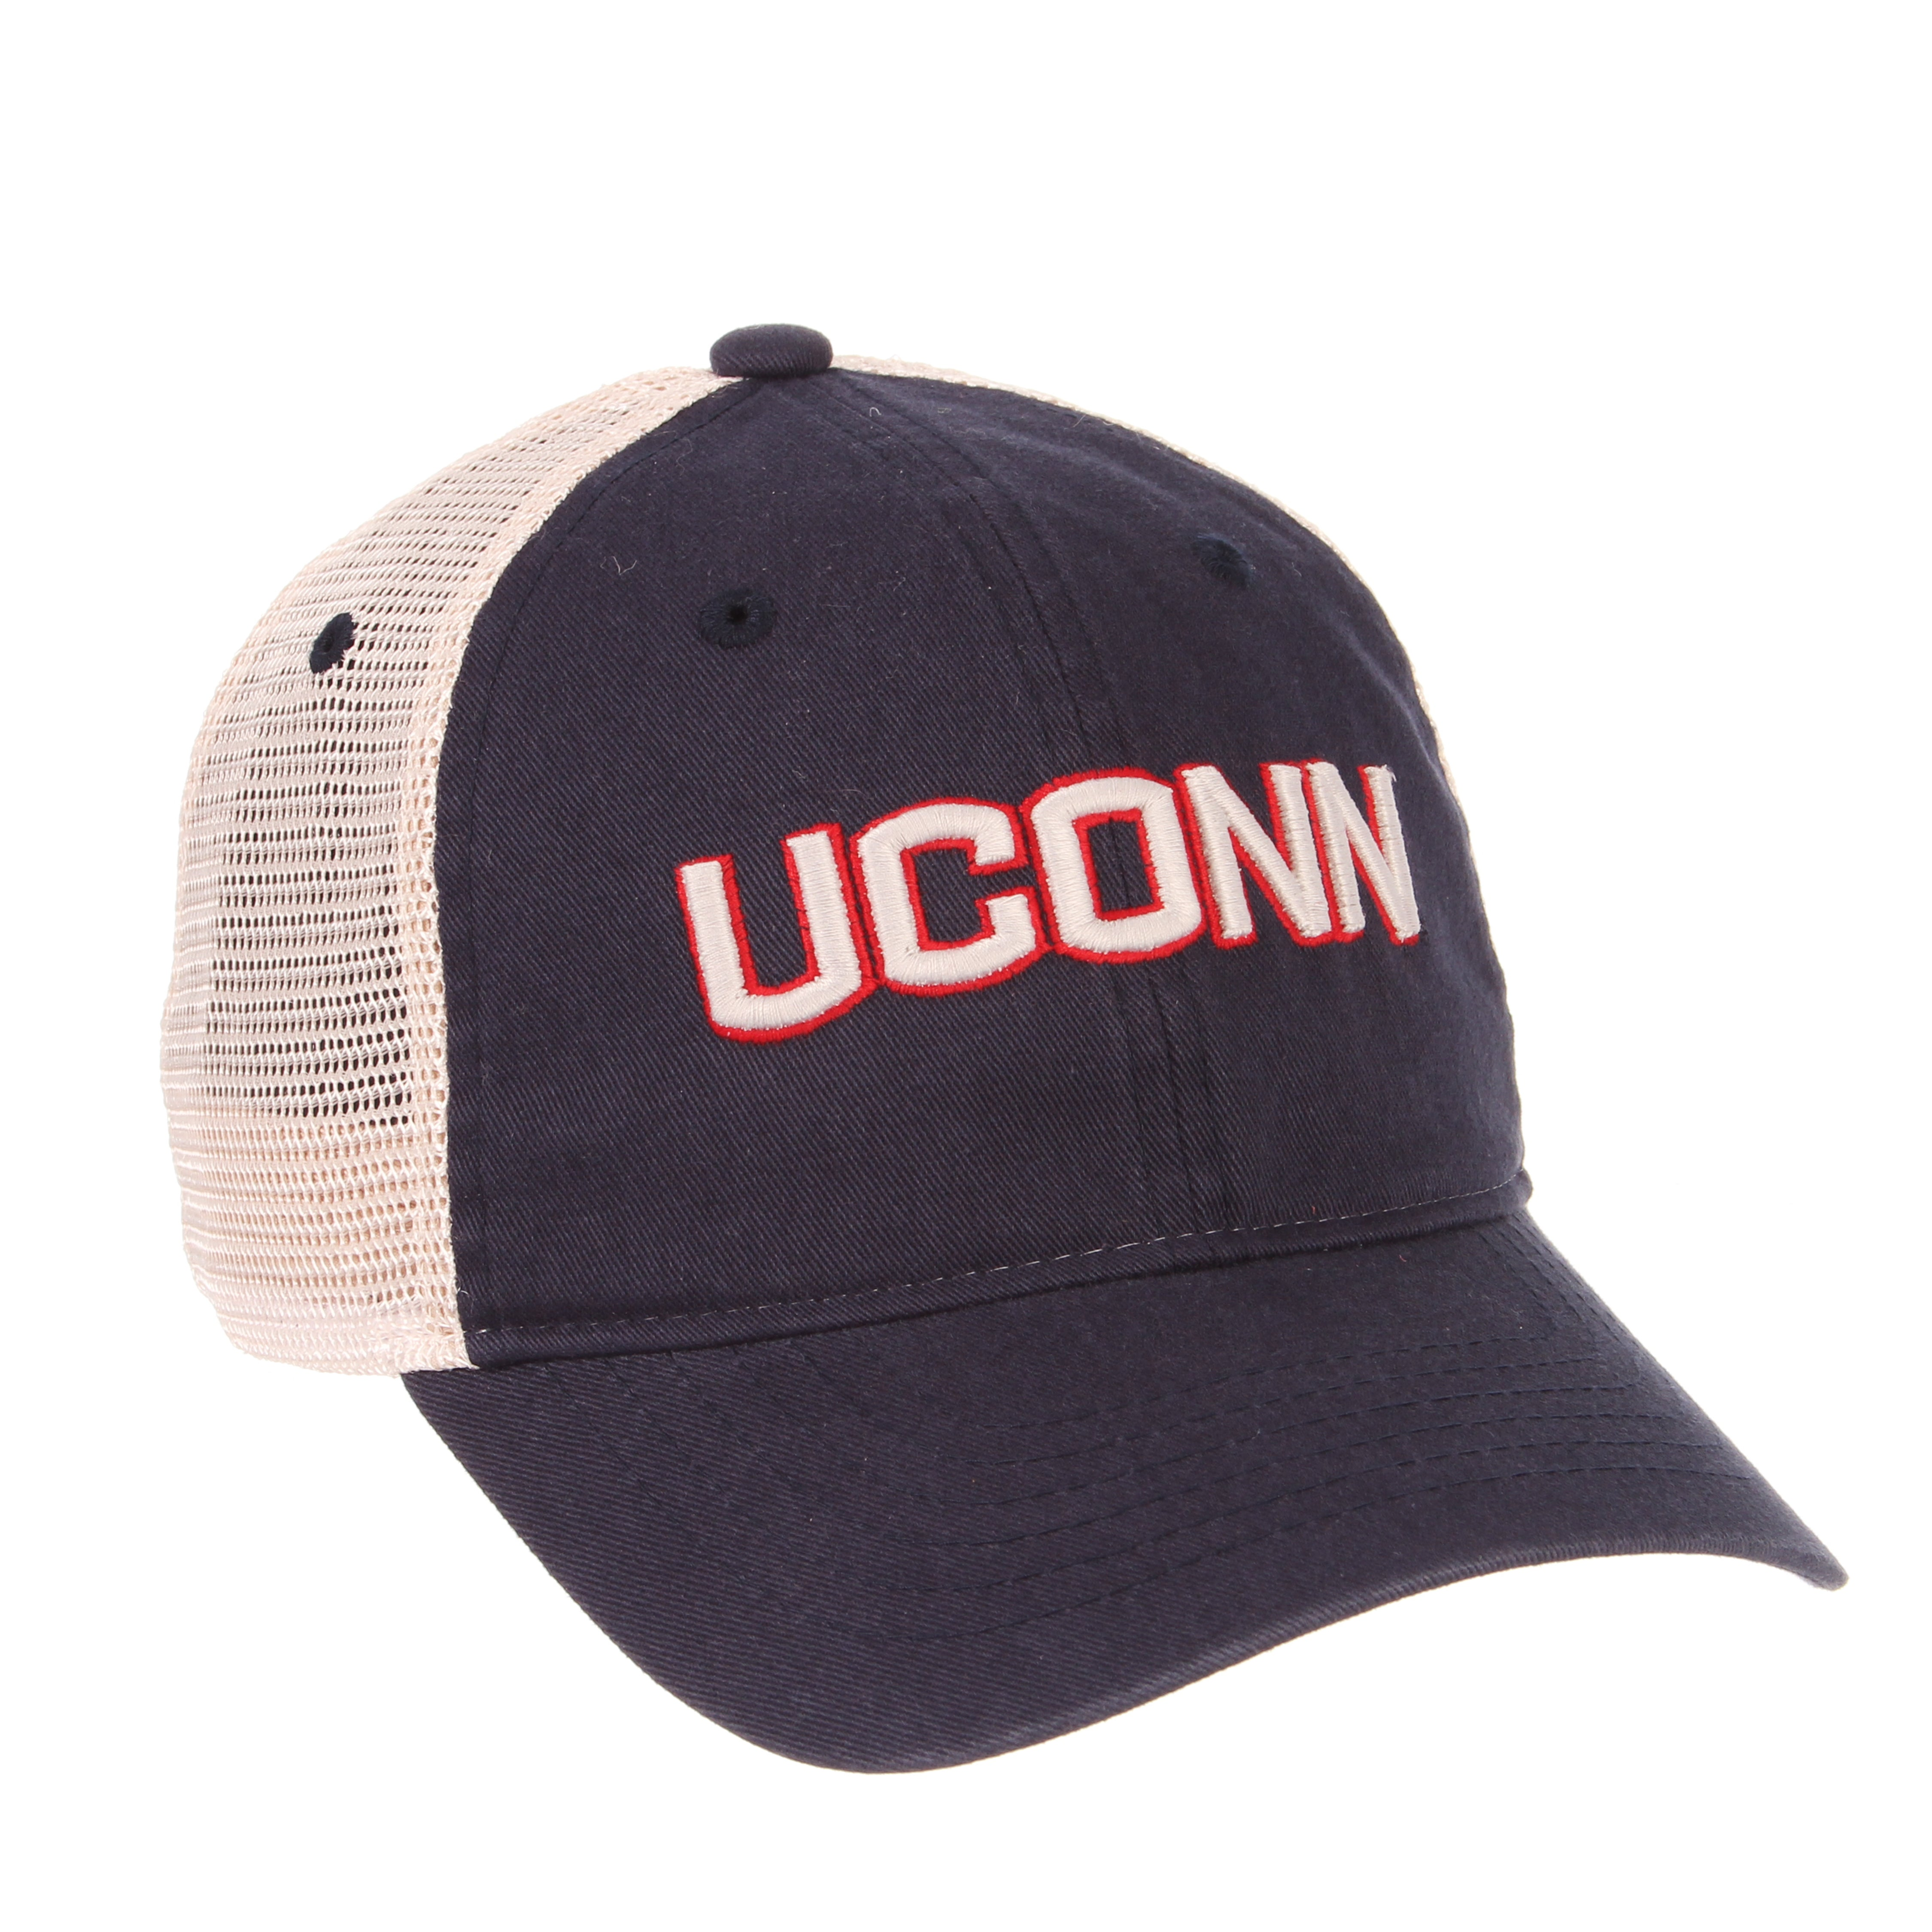 Connecticut (UCONN) University